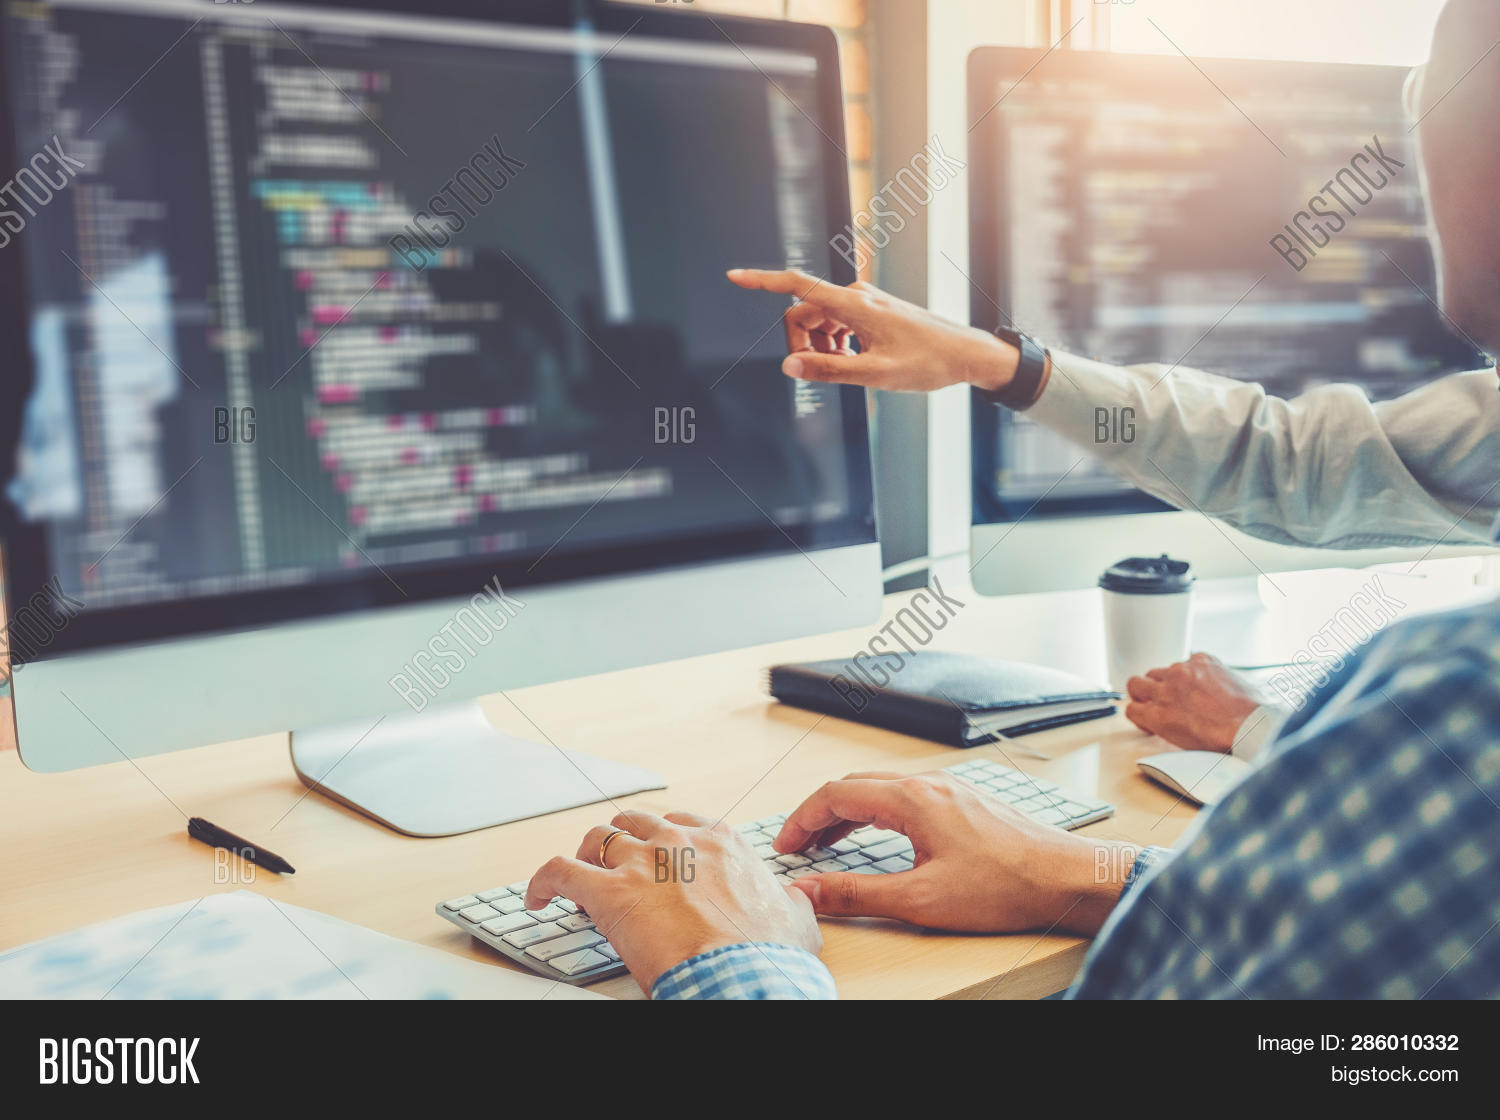 Java,analyze,app,application,brainstorming,business,code,coder,coding,colleague,communication,computer,corporate,creative,cyber,data,database,design,designer,develop,developer,development,digital,engineer,hacker,hardware,information,internet,job,language,meeting,monitor,network,networking,occupation,password,professional,program,programmer,programming,project,security,software,support,team,teamwork,technology,web,website,working